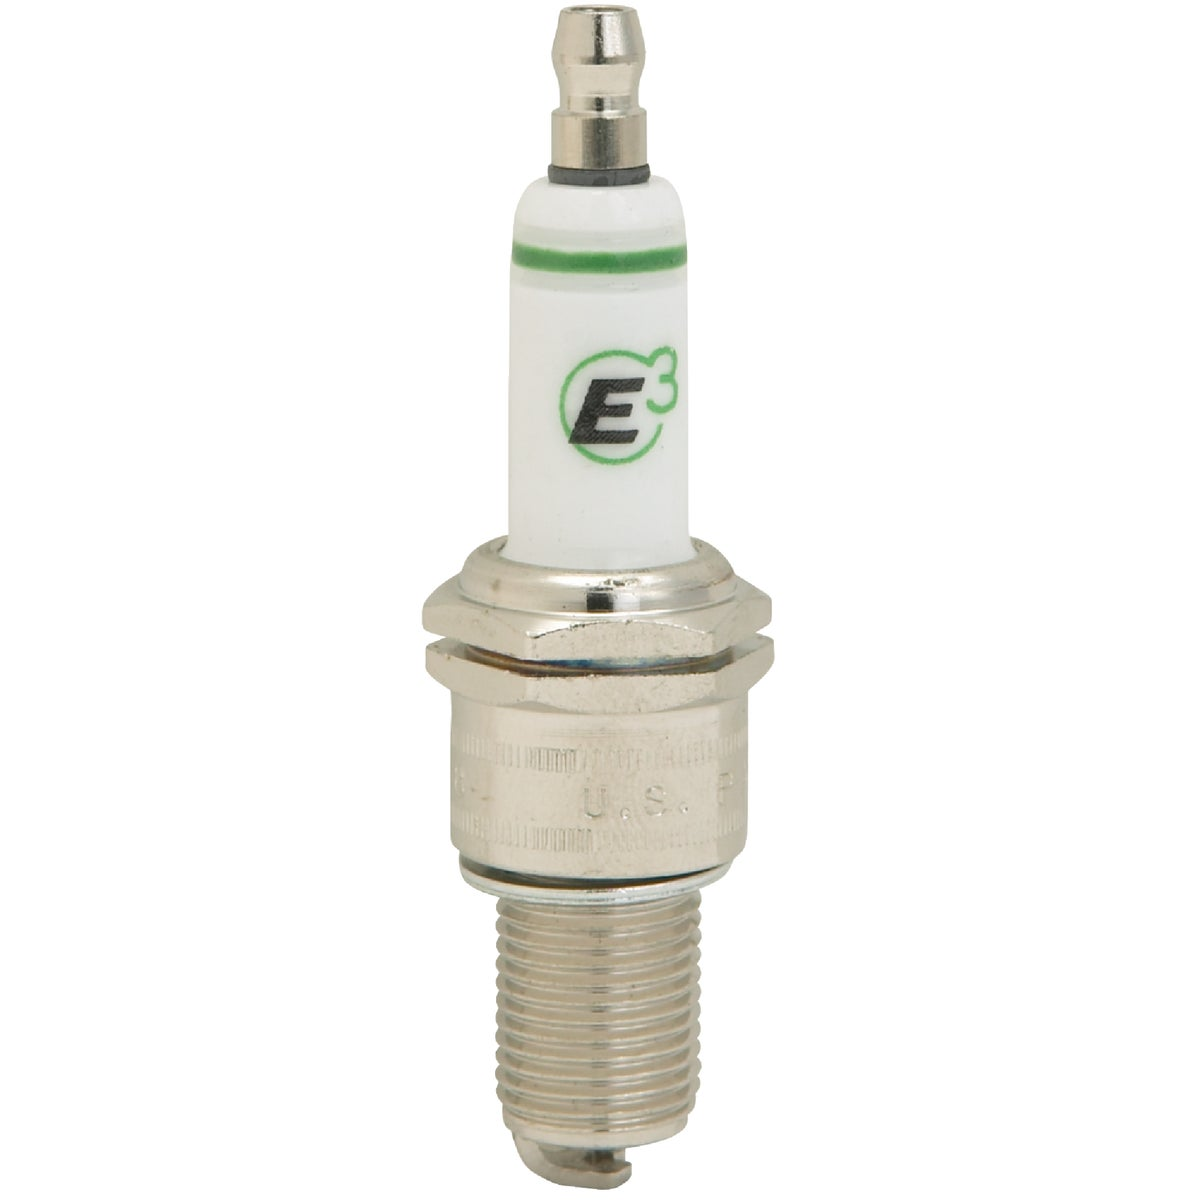 STD SM ENGINE SPARK PLUG - E3.18 by Arnold Corp